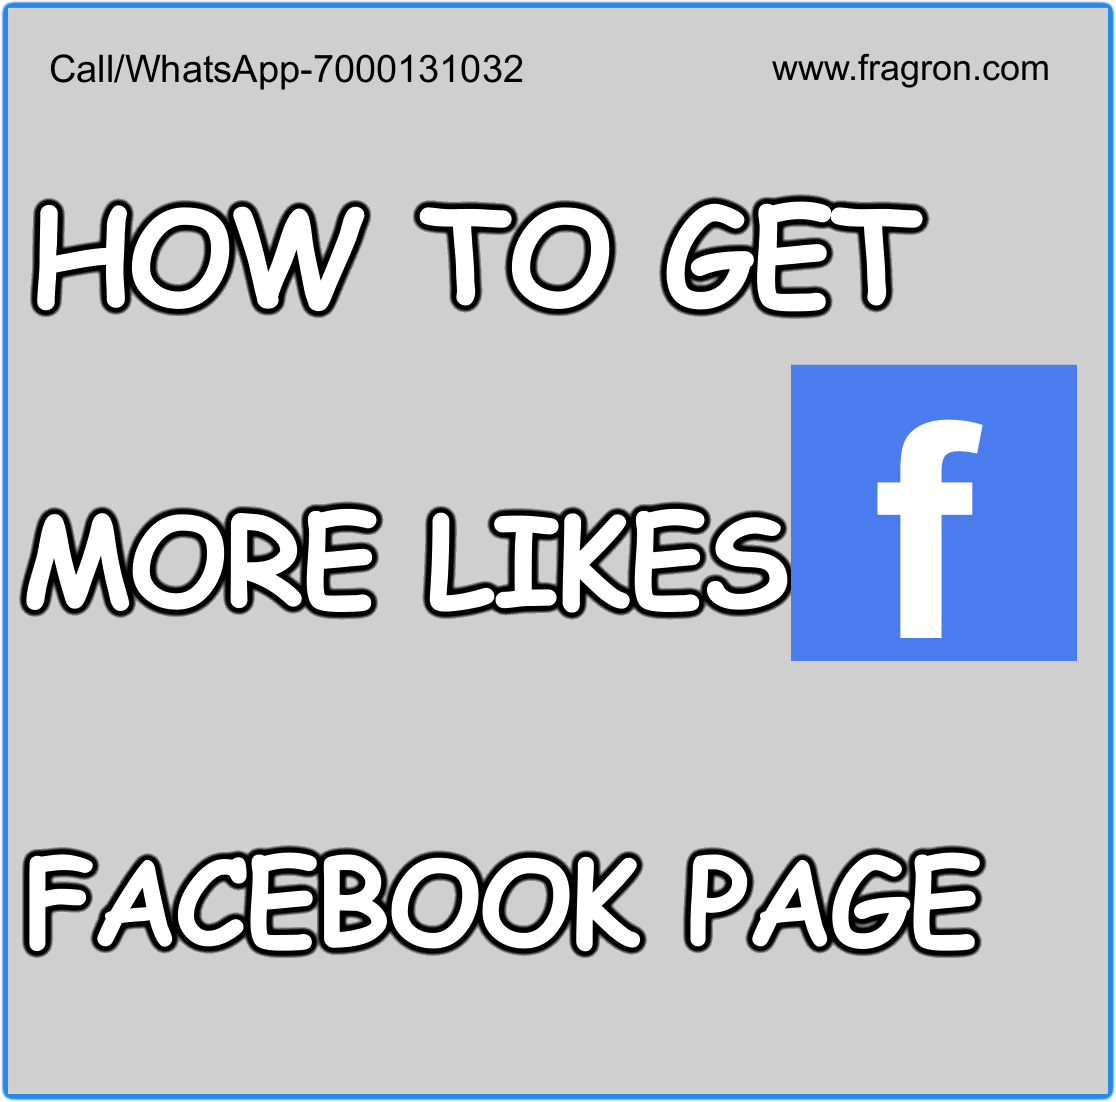 How to Get More Likes on Facebook Page.